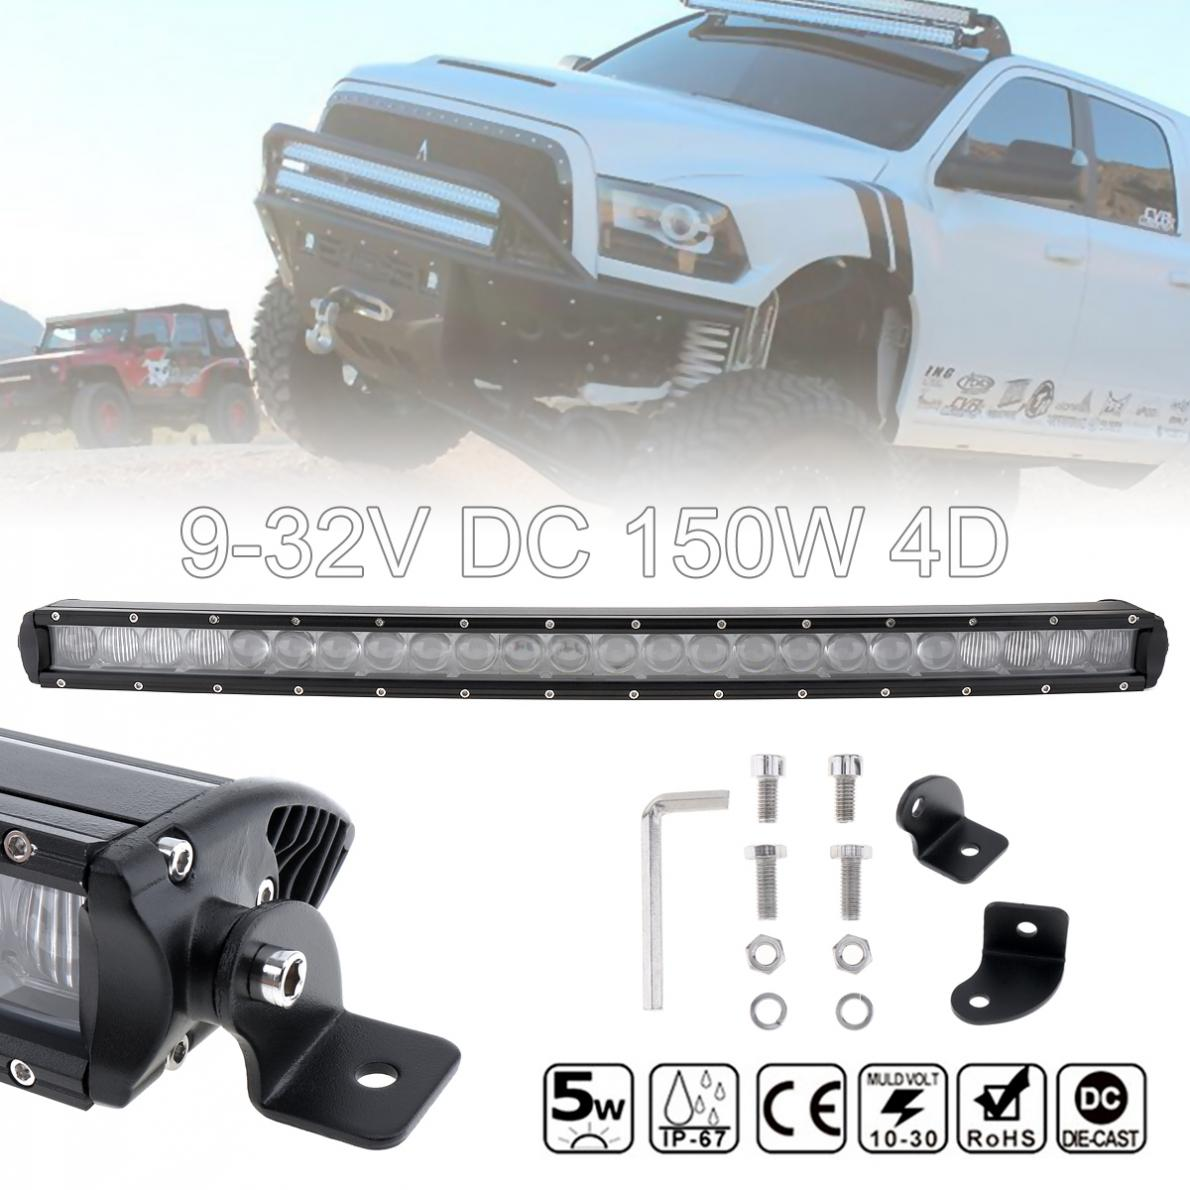 31 Inch 150W 15000 LM Waterproof Car LED Curved Worklight Bar 30x 4D Combo Offroad Light Driving Lamp for Truck SUV 4X4 4WD ATV 50 inch 288w curved led light bar offroad 288w led light bar for off road 4x4 4wd car truck atv suv 12v 24v boat combo wire kit